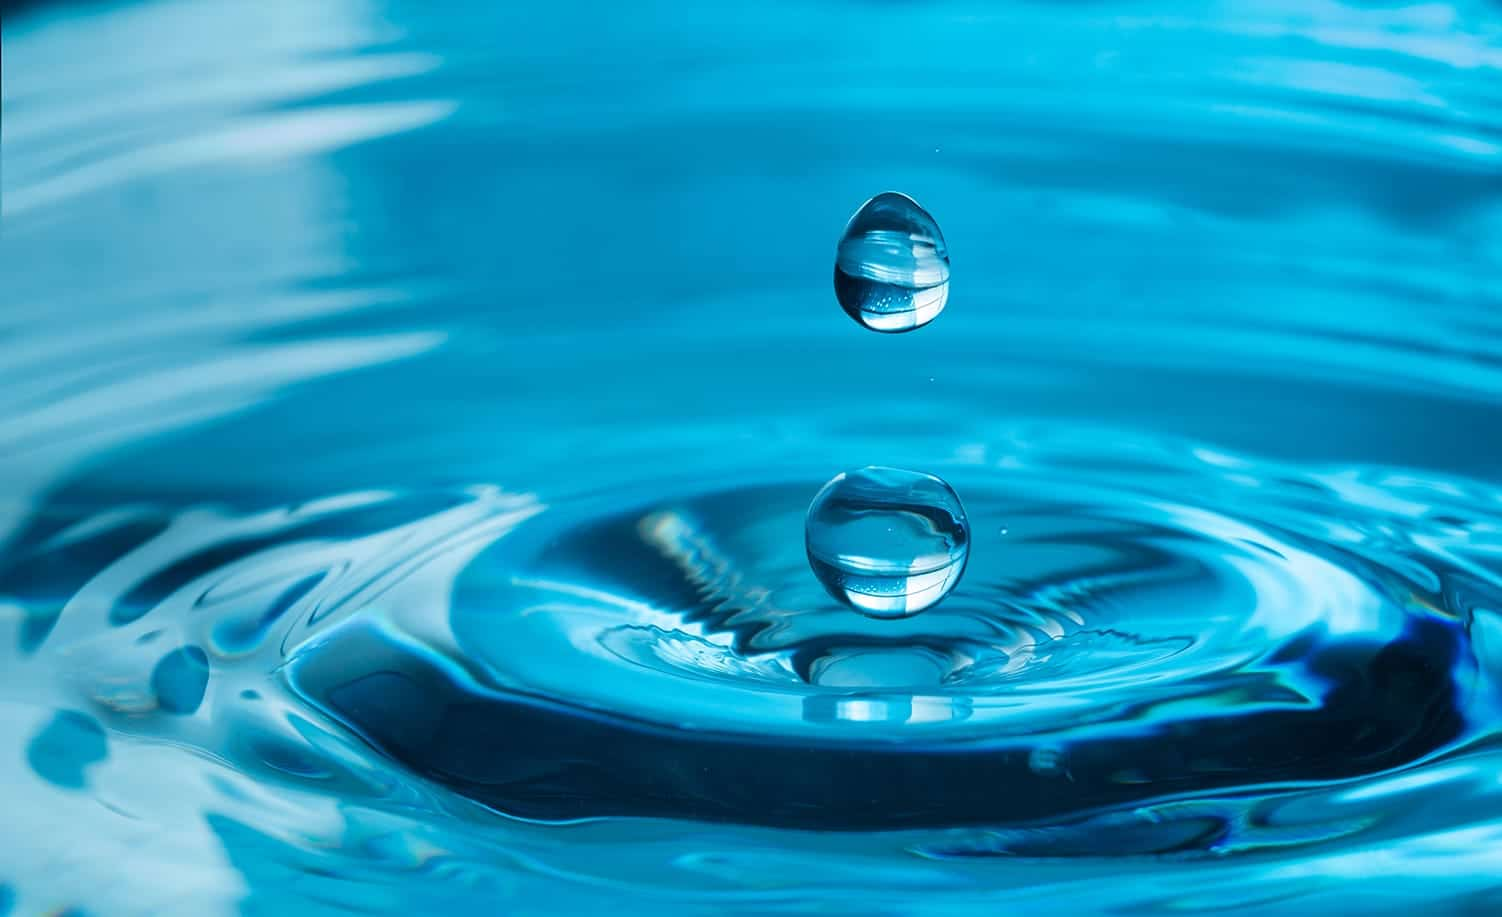 home-banner-image-water